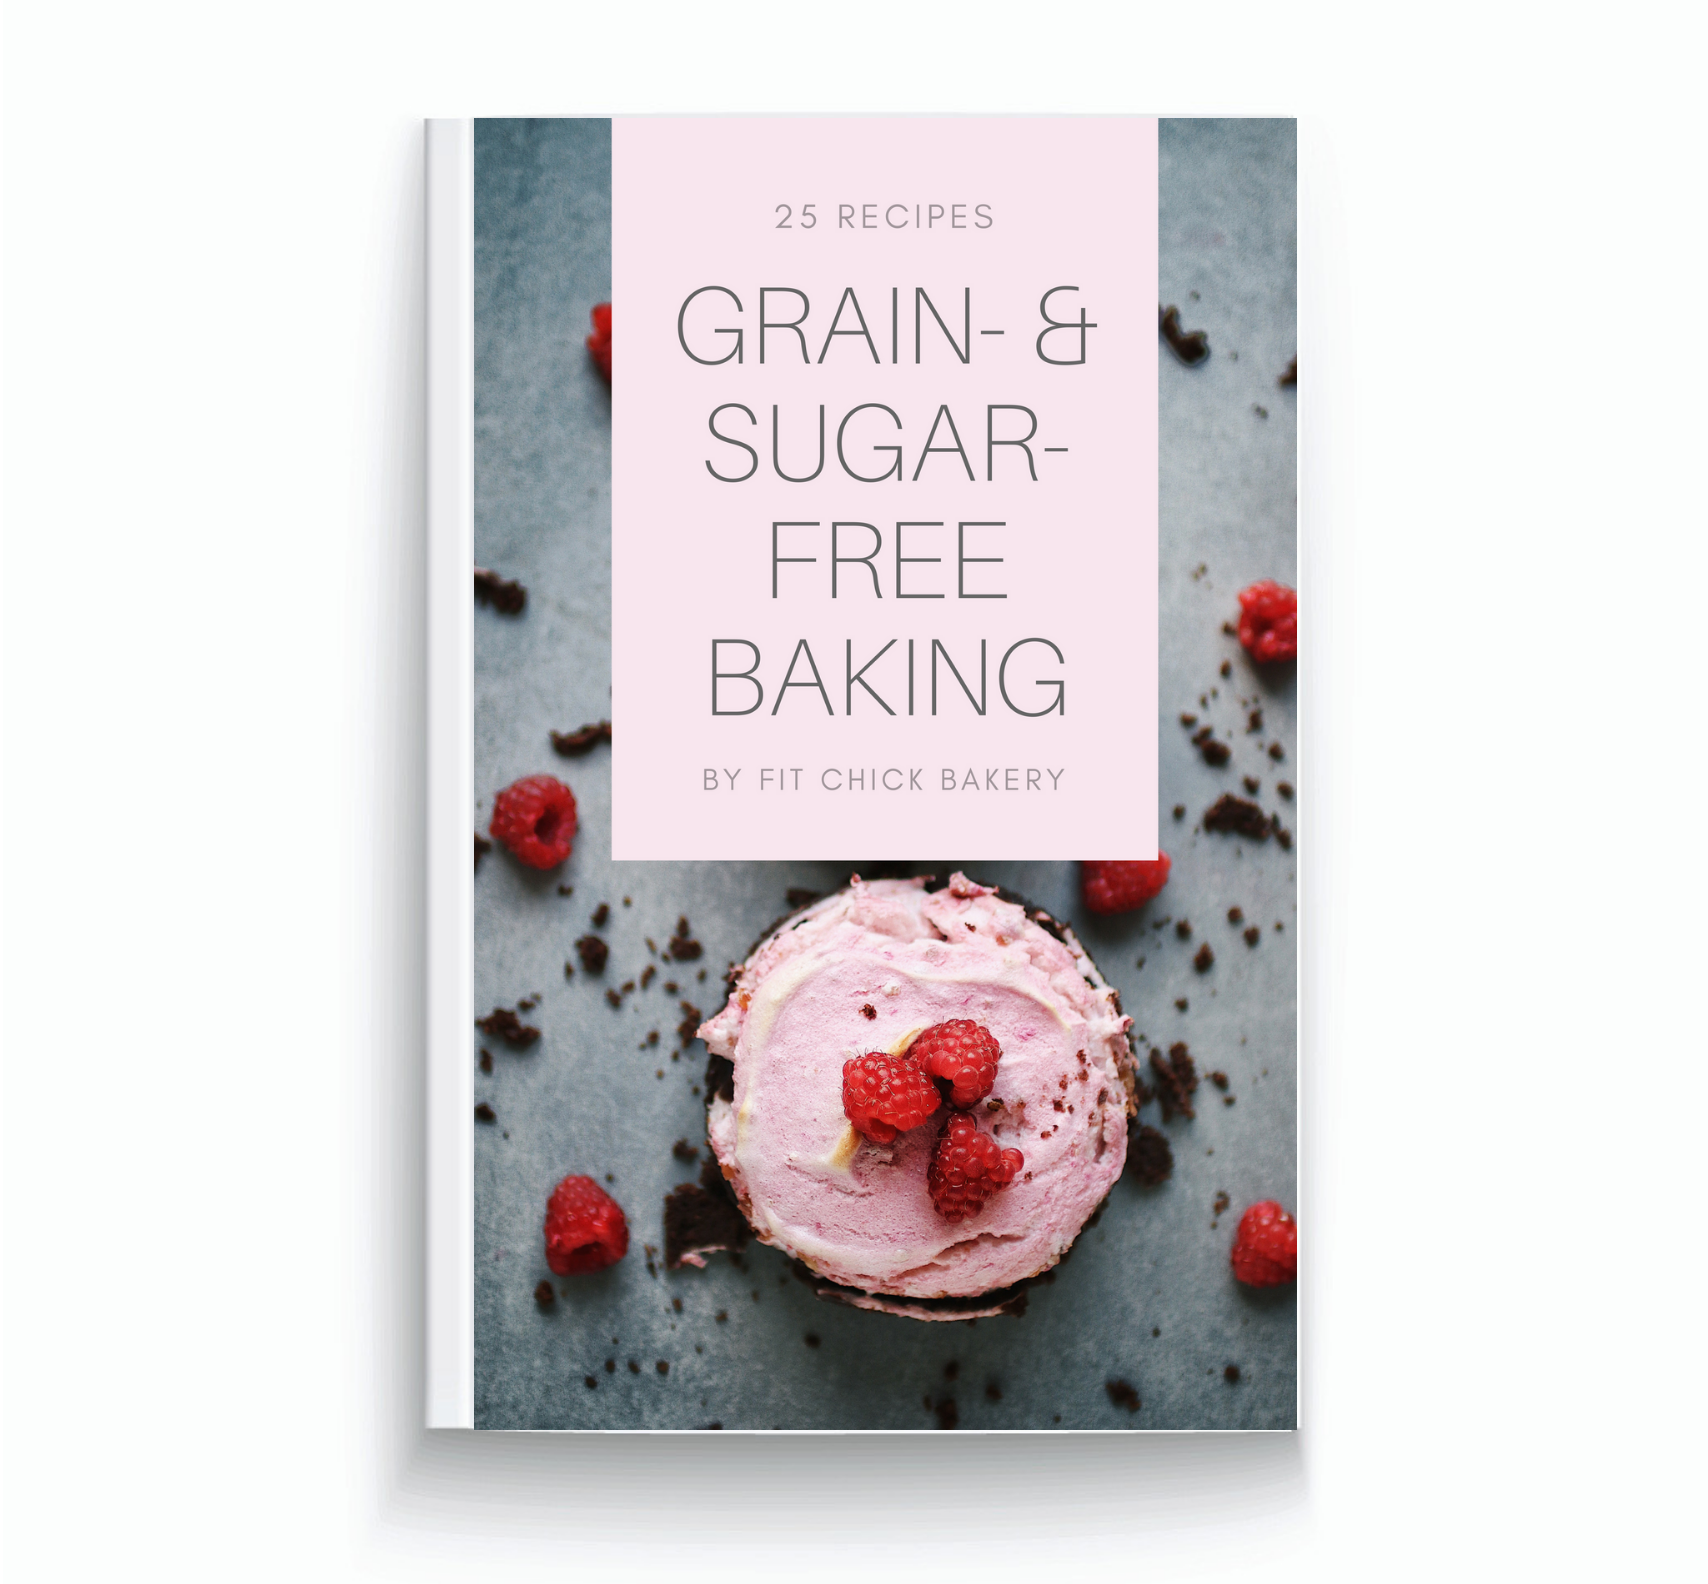 25 Grain-free and Sugar-free Baking Recipes Ebook Cover by Fit Chick Bakery - written by Marina Negele and Michael Negele - Free Ebook